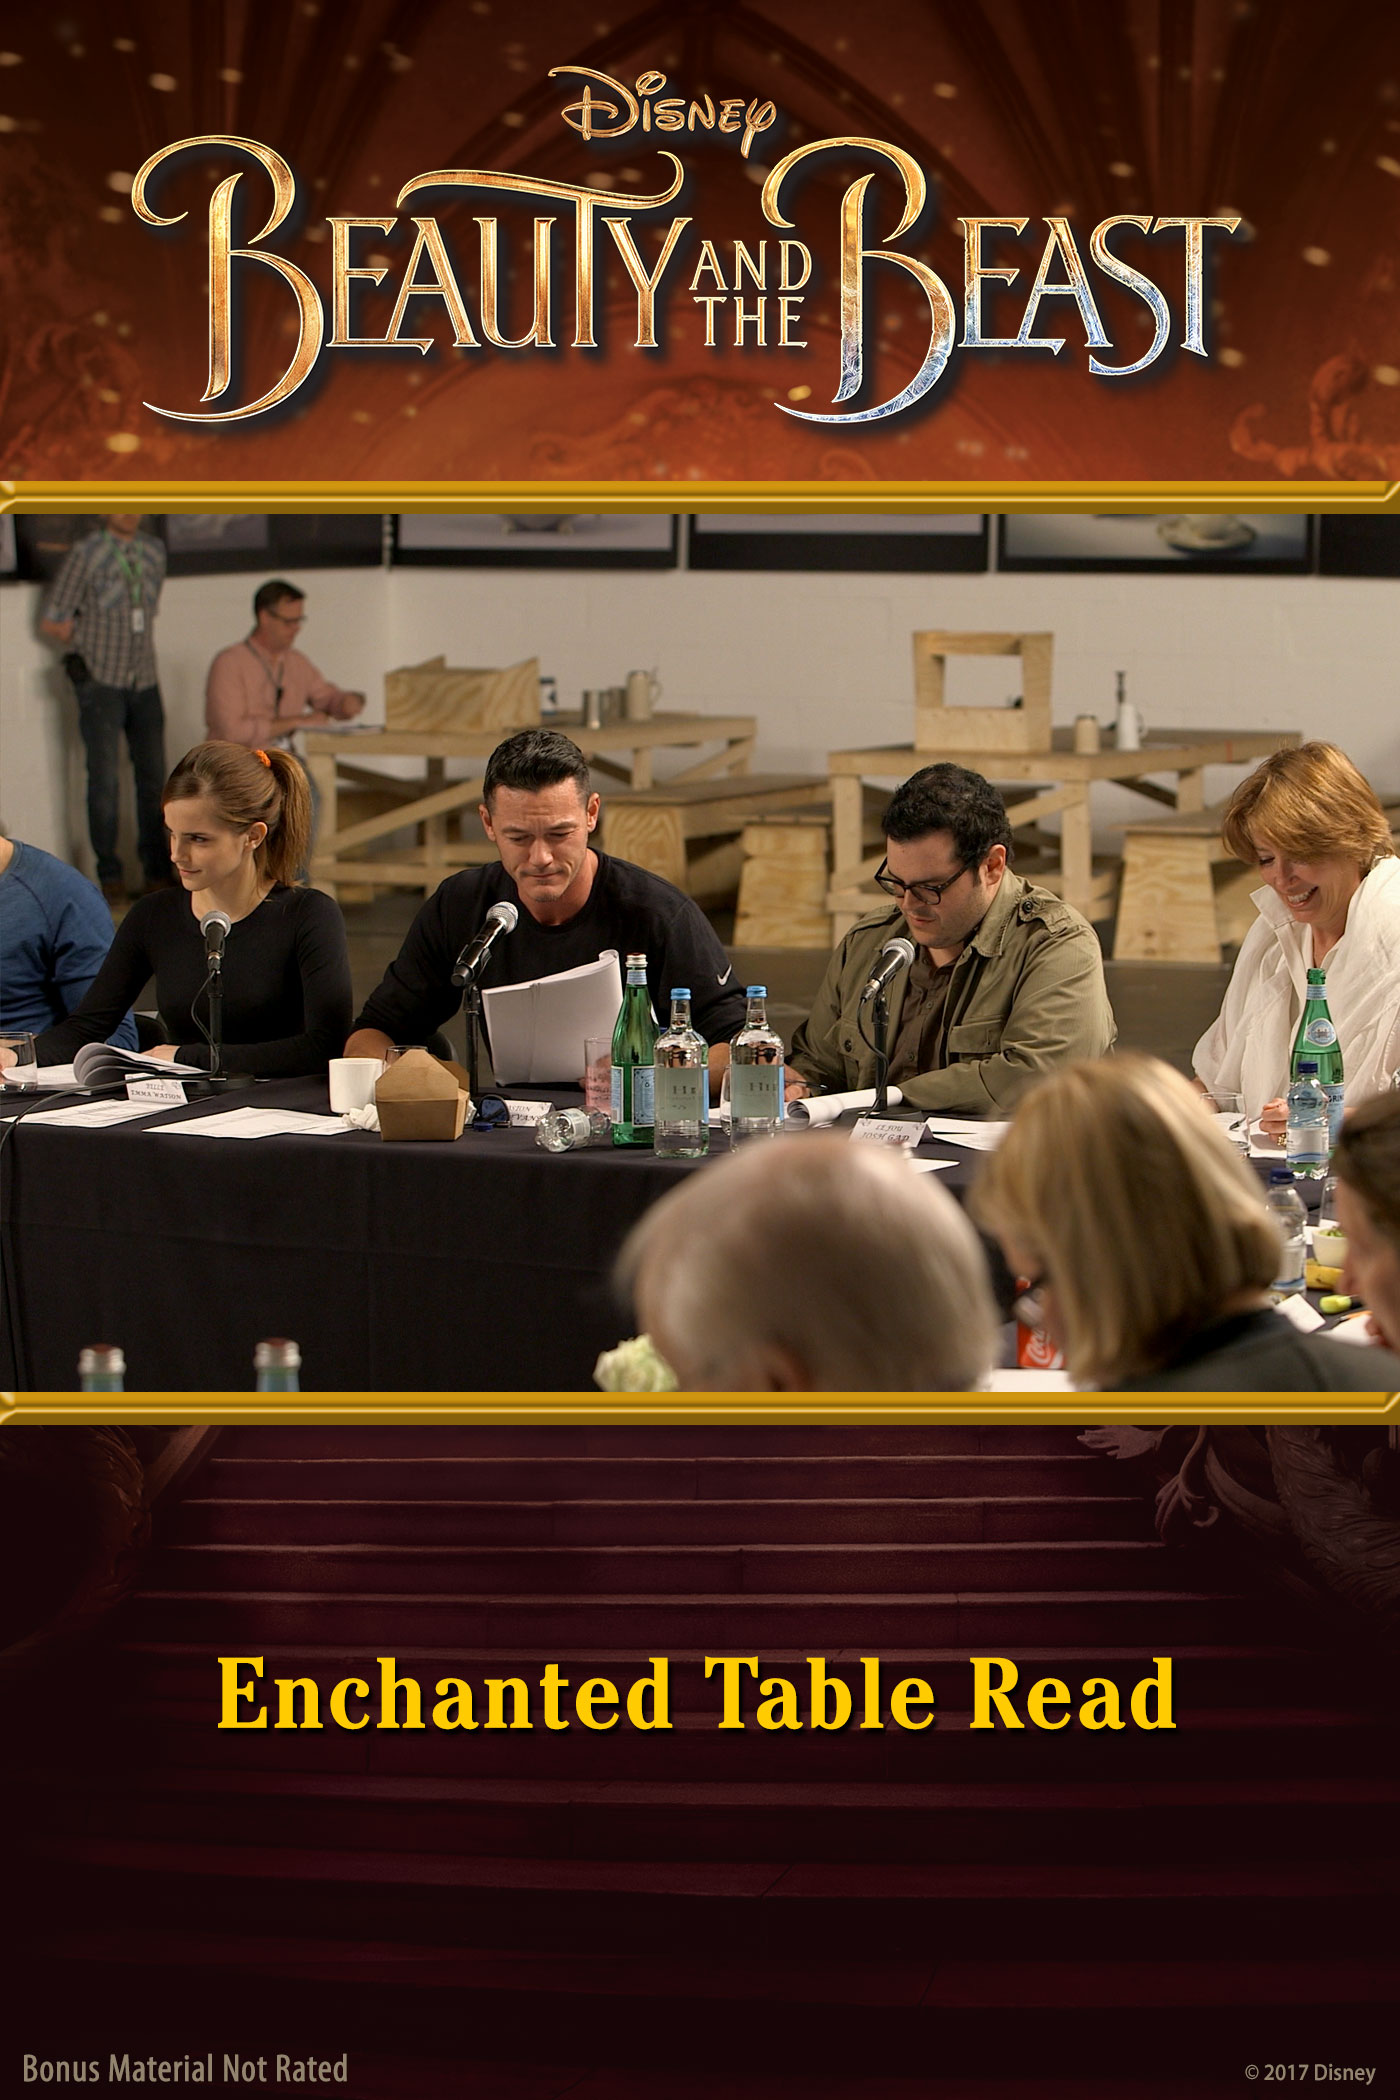 Enchanted Table Read